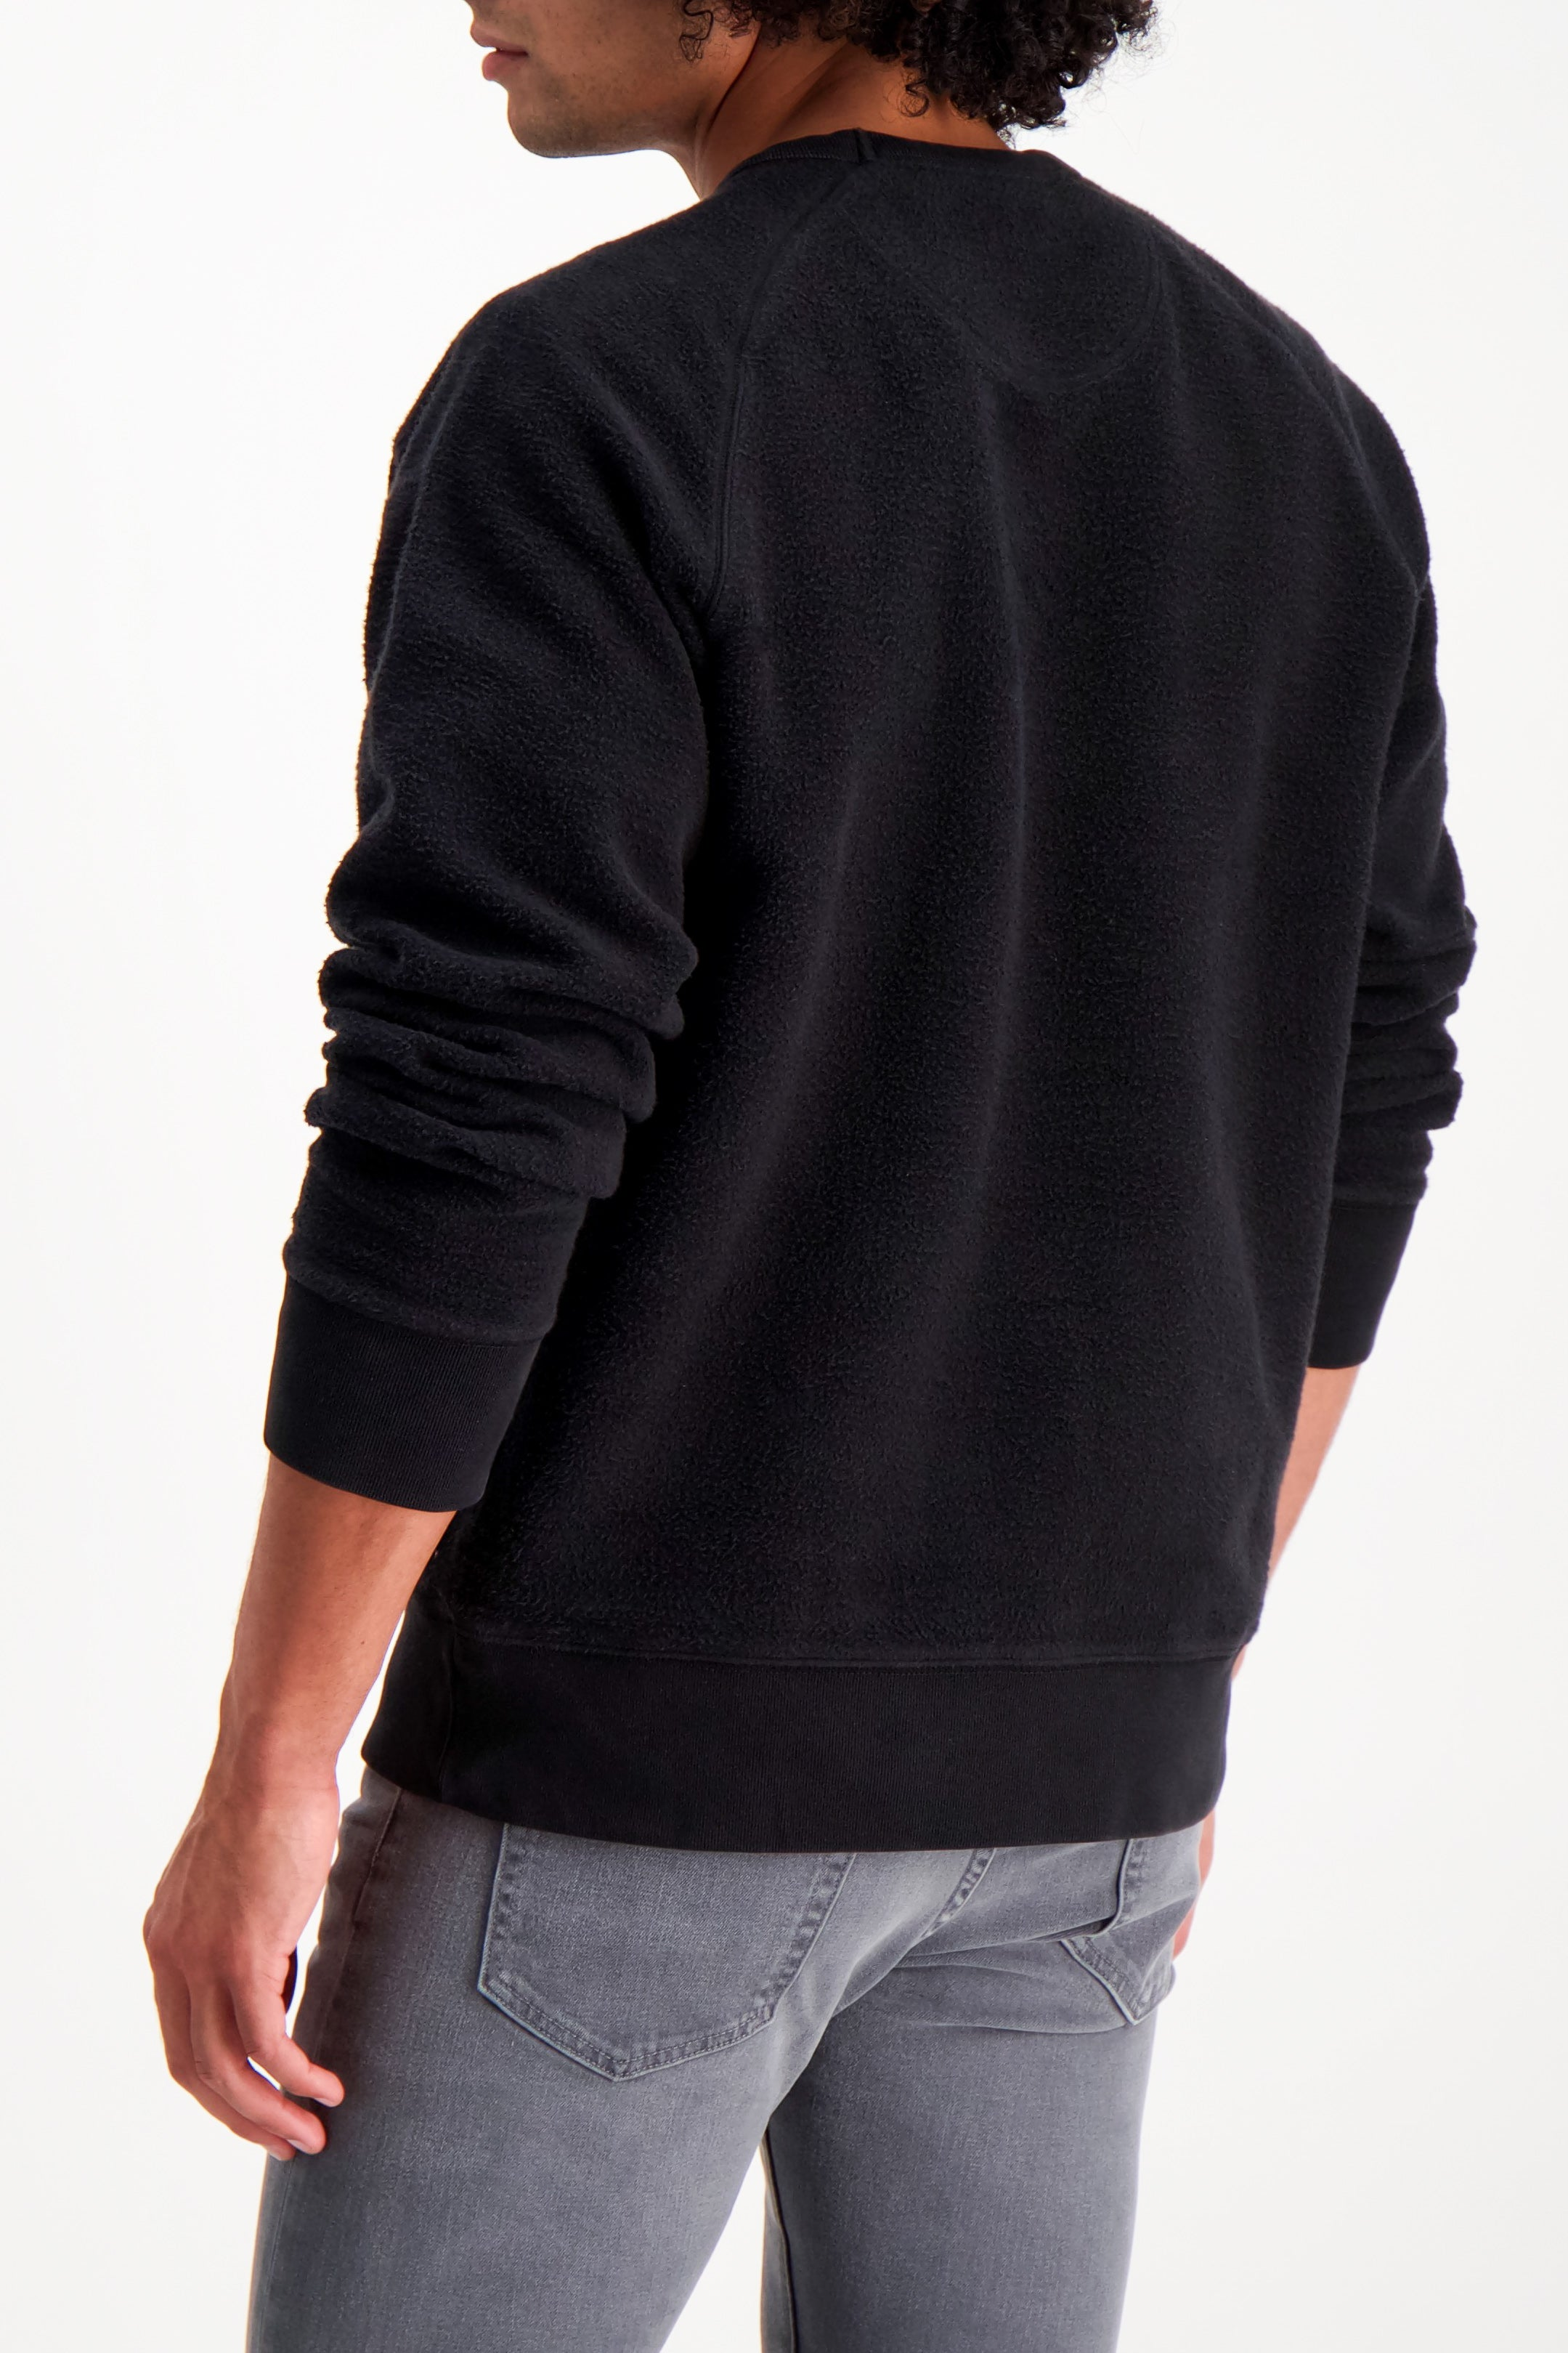 Back Crop Image Of Model Wearing Saturdays NYC Simon Crewneck In Black